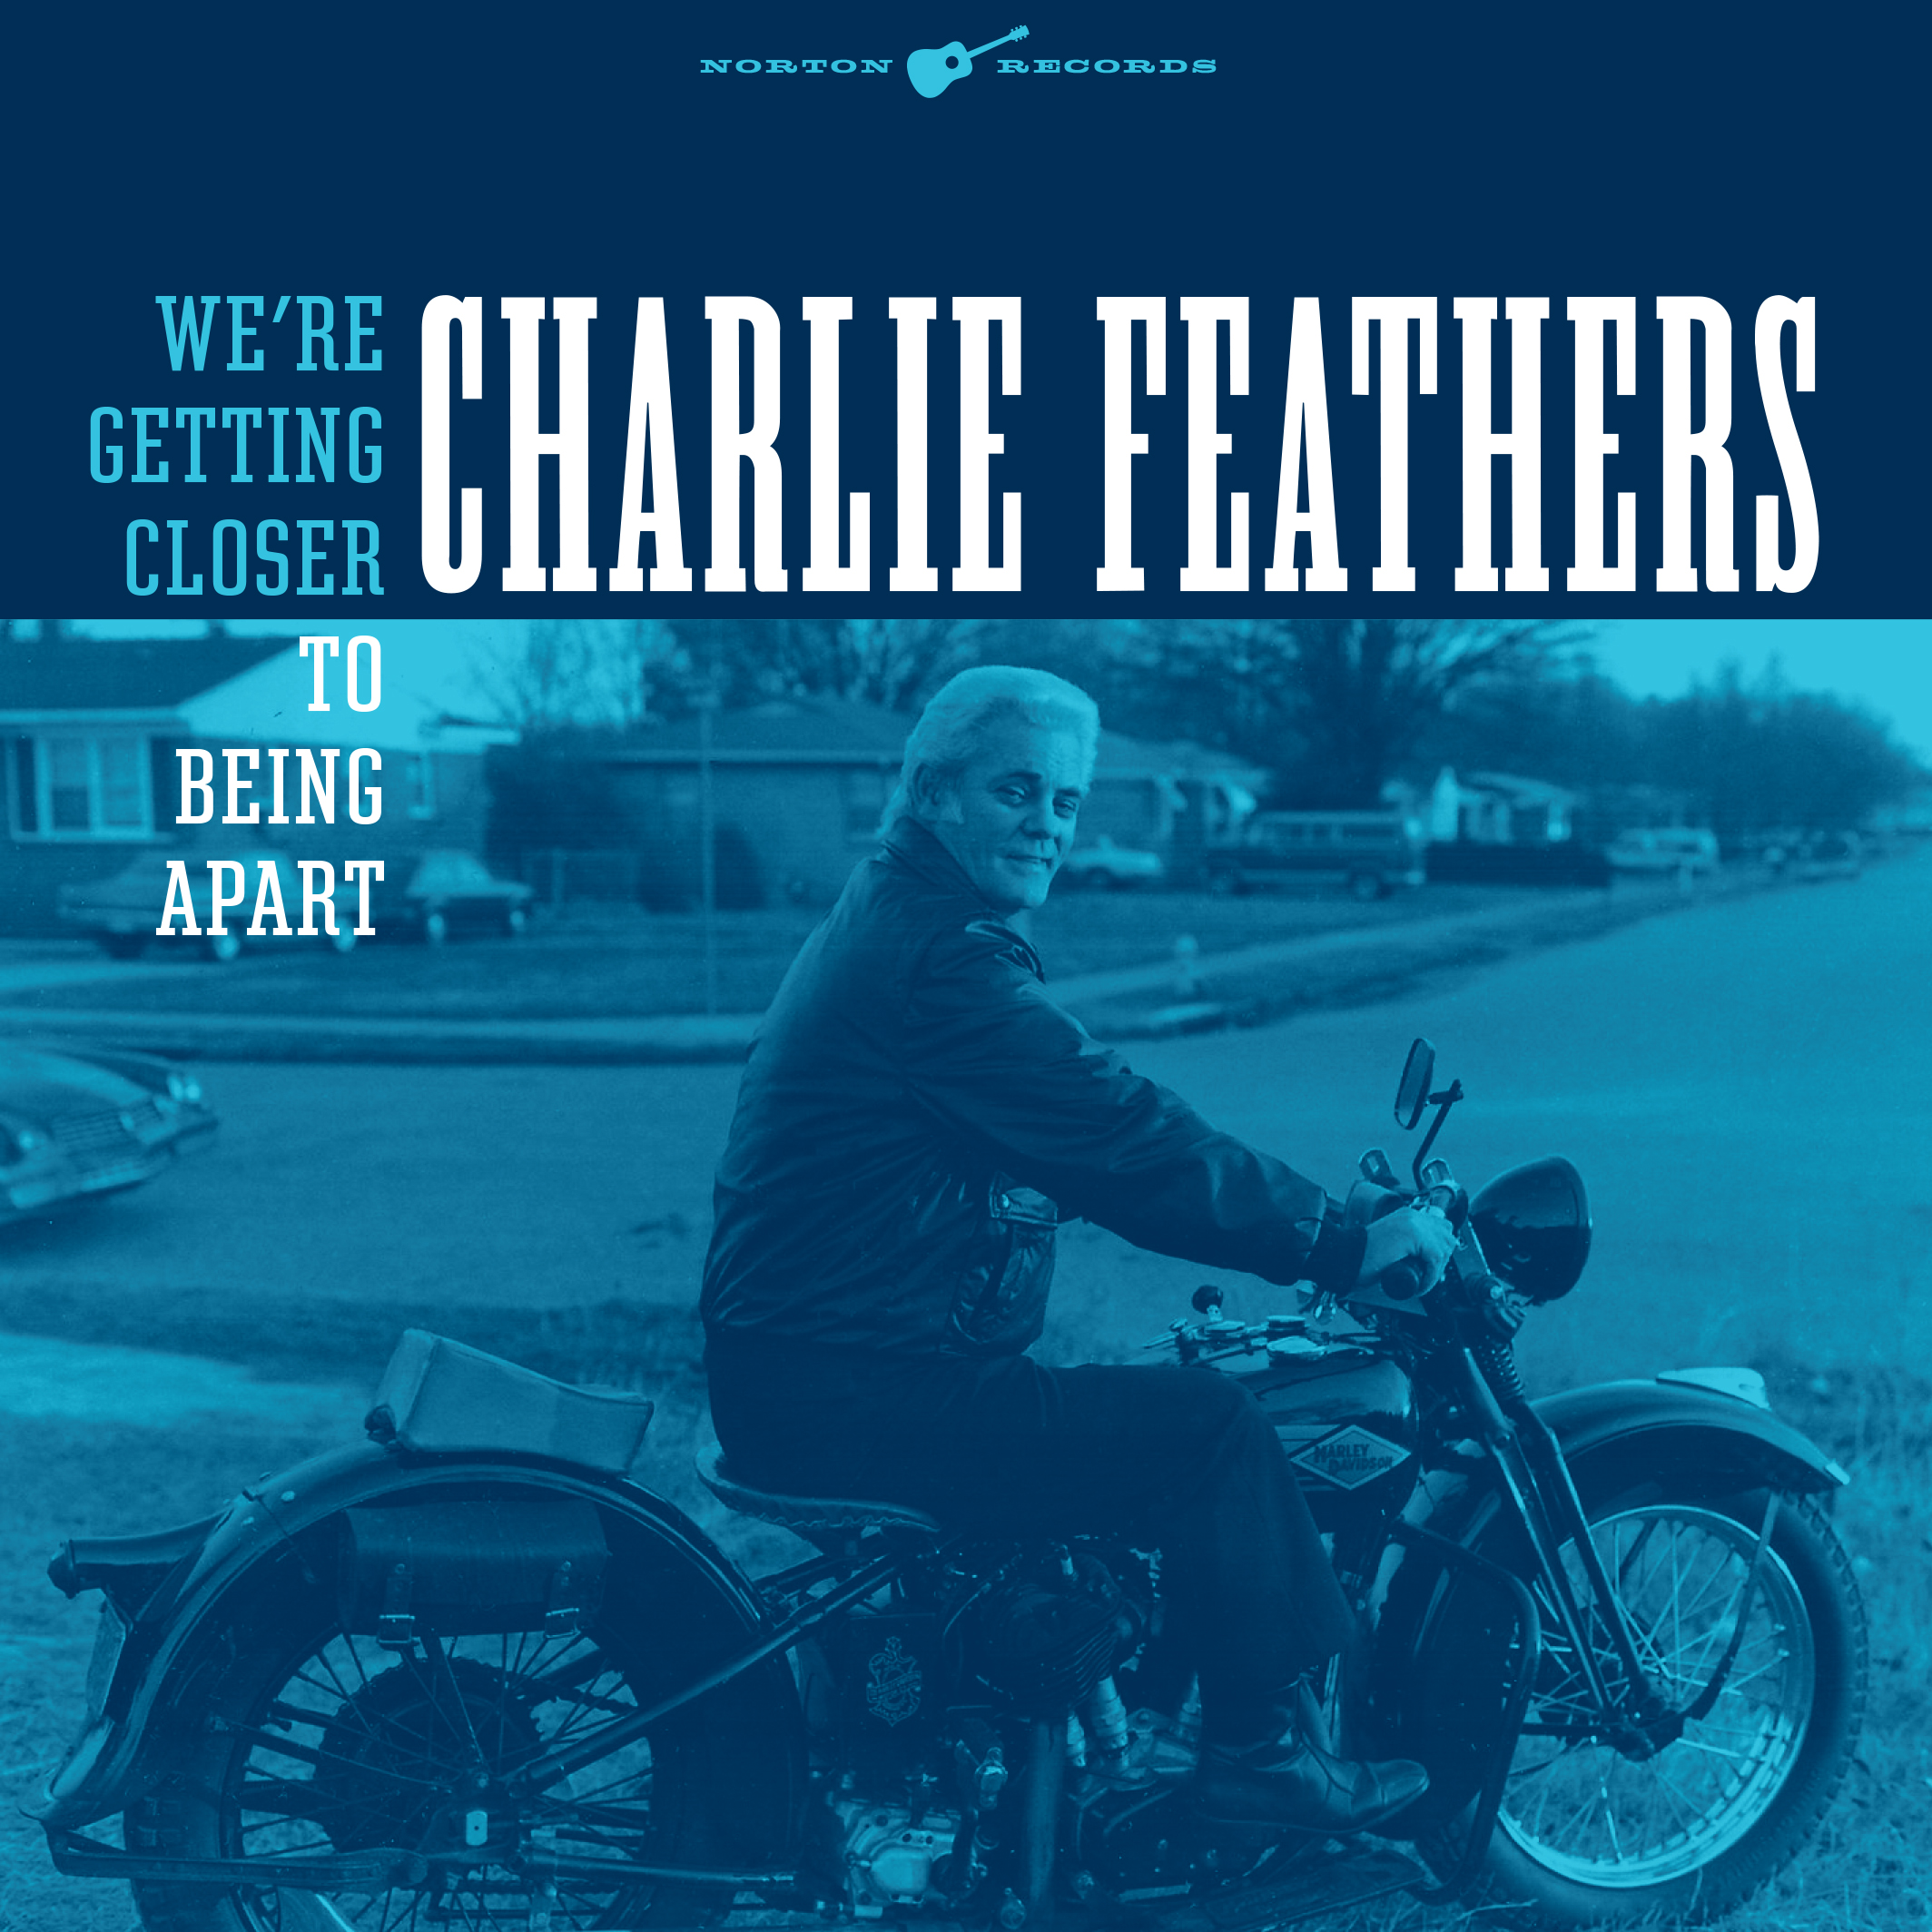 Charlie Feathers - We're Getting Closer to Being Apart 45 sleeve